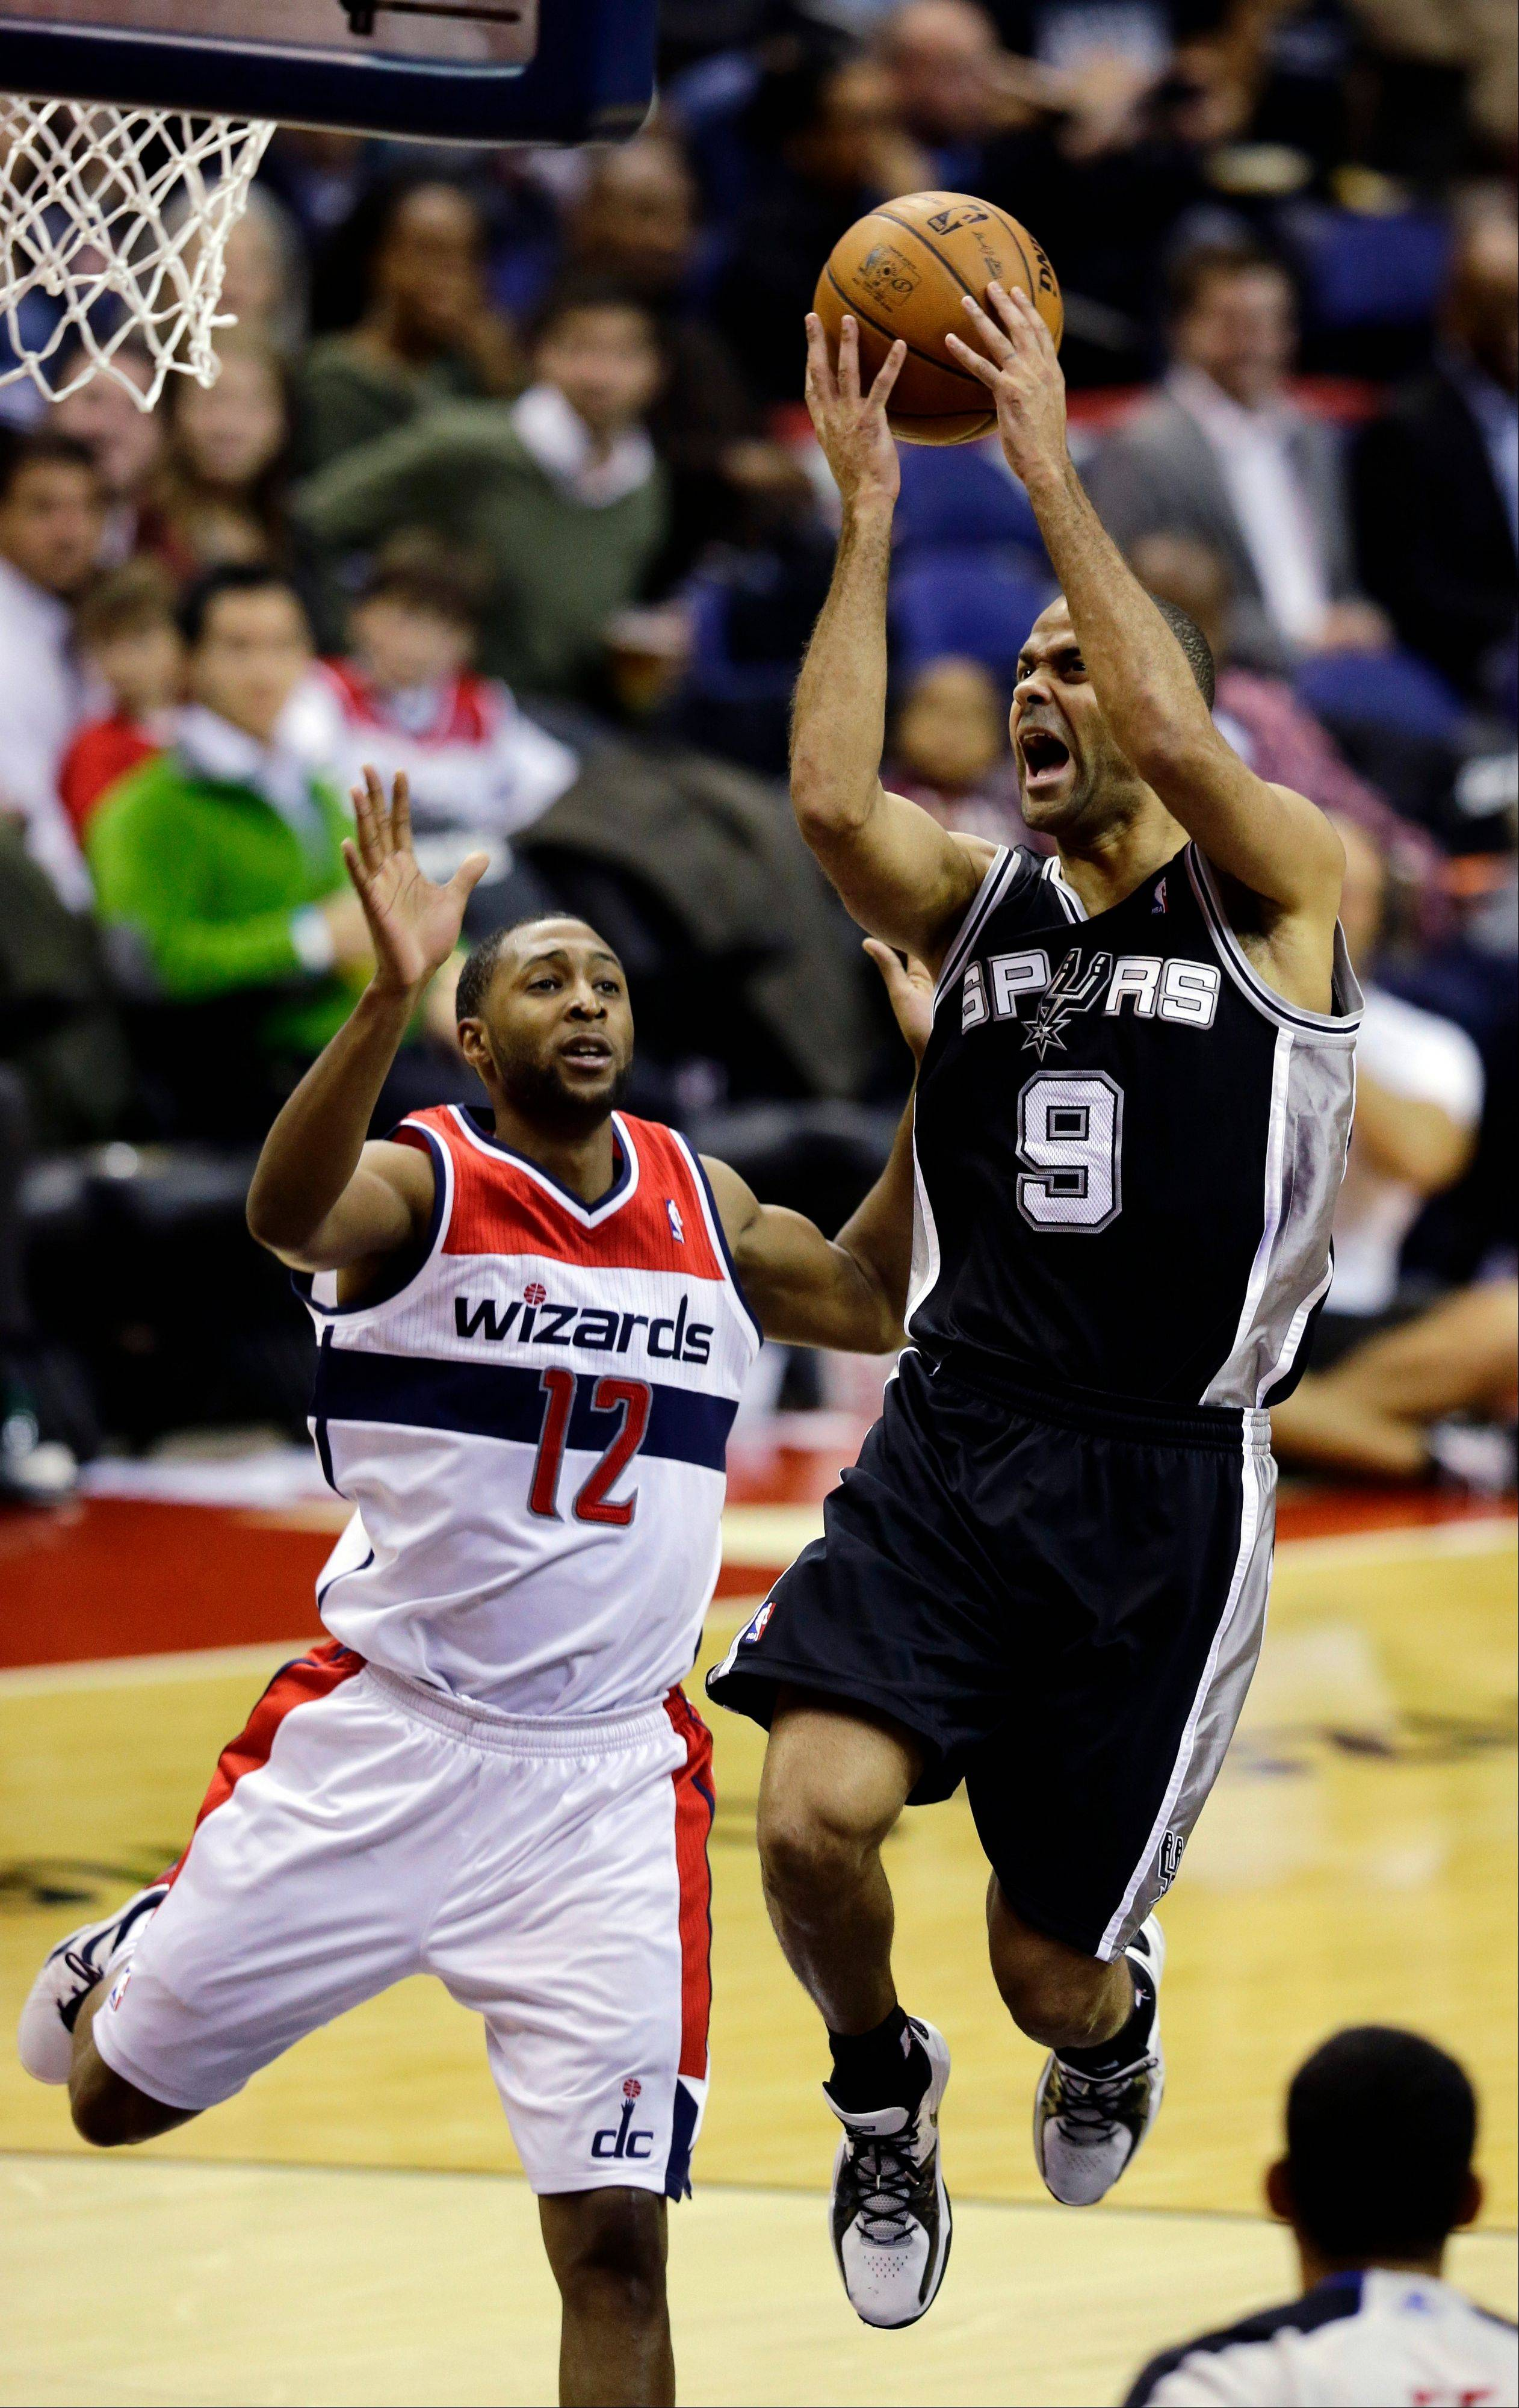 San Antonio Spurs guard Tony Parker shoots past Washington Wizards guard A.J. Price in the second half of an NBA basketball game Monday, Nov. 26, 2012, in Washington. The Spurs won 118-92. The Wizards are now 0-12.